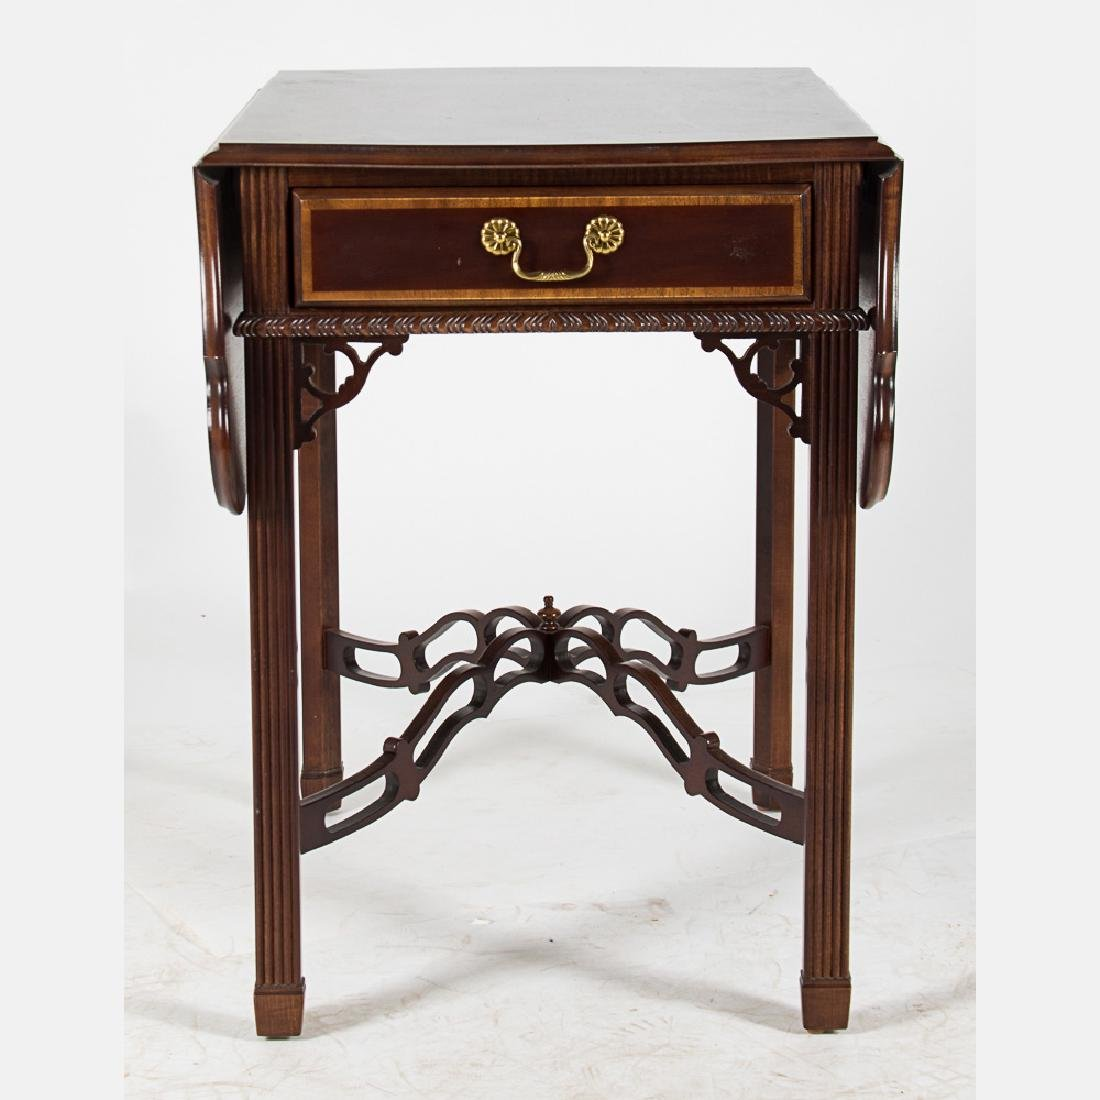 A Chippendale Style Mahogany Pembroke Table with Single